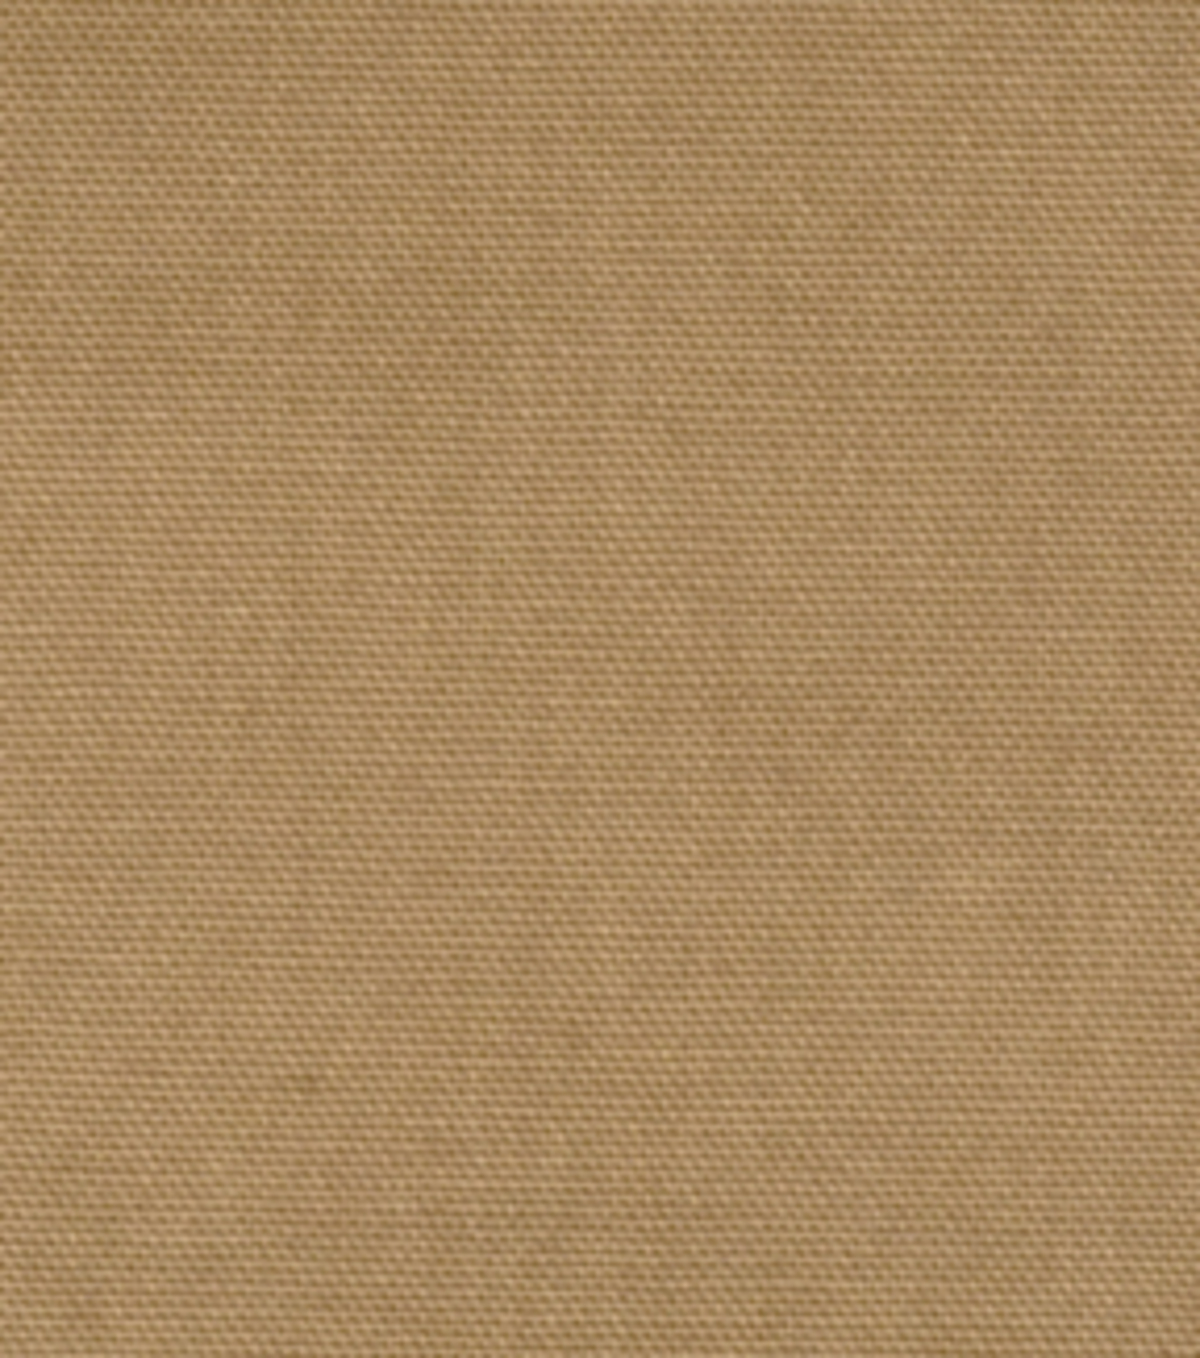 Home Decor 8\u0022x8\u0022 Fabric Swatch-Signature Series Legacy Cotton Wicker